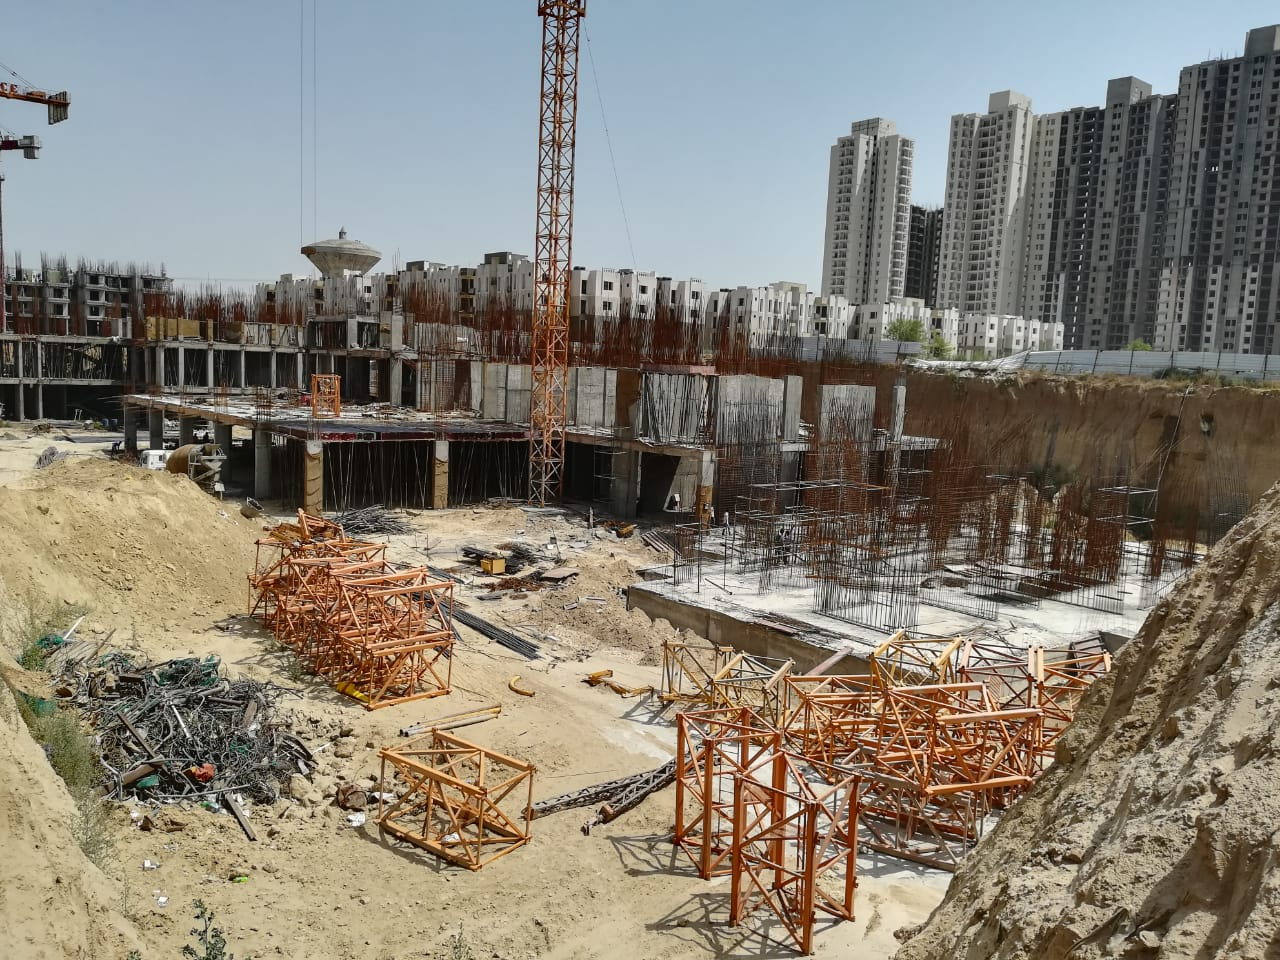 BASEMENT CONSTRUCTION OF TOWER 2 & 3 AND ALSO RAFT CONSTRUCTION OF TOWER 4